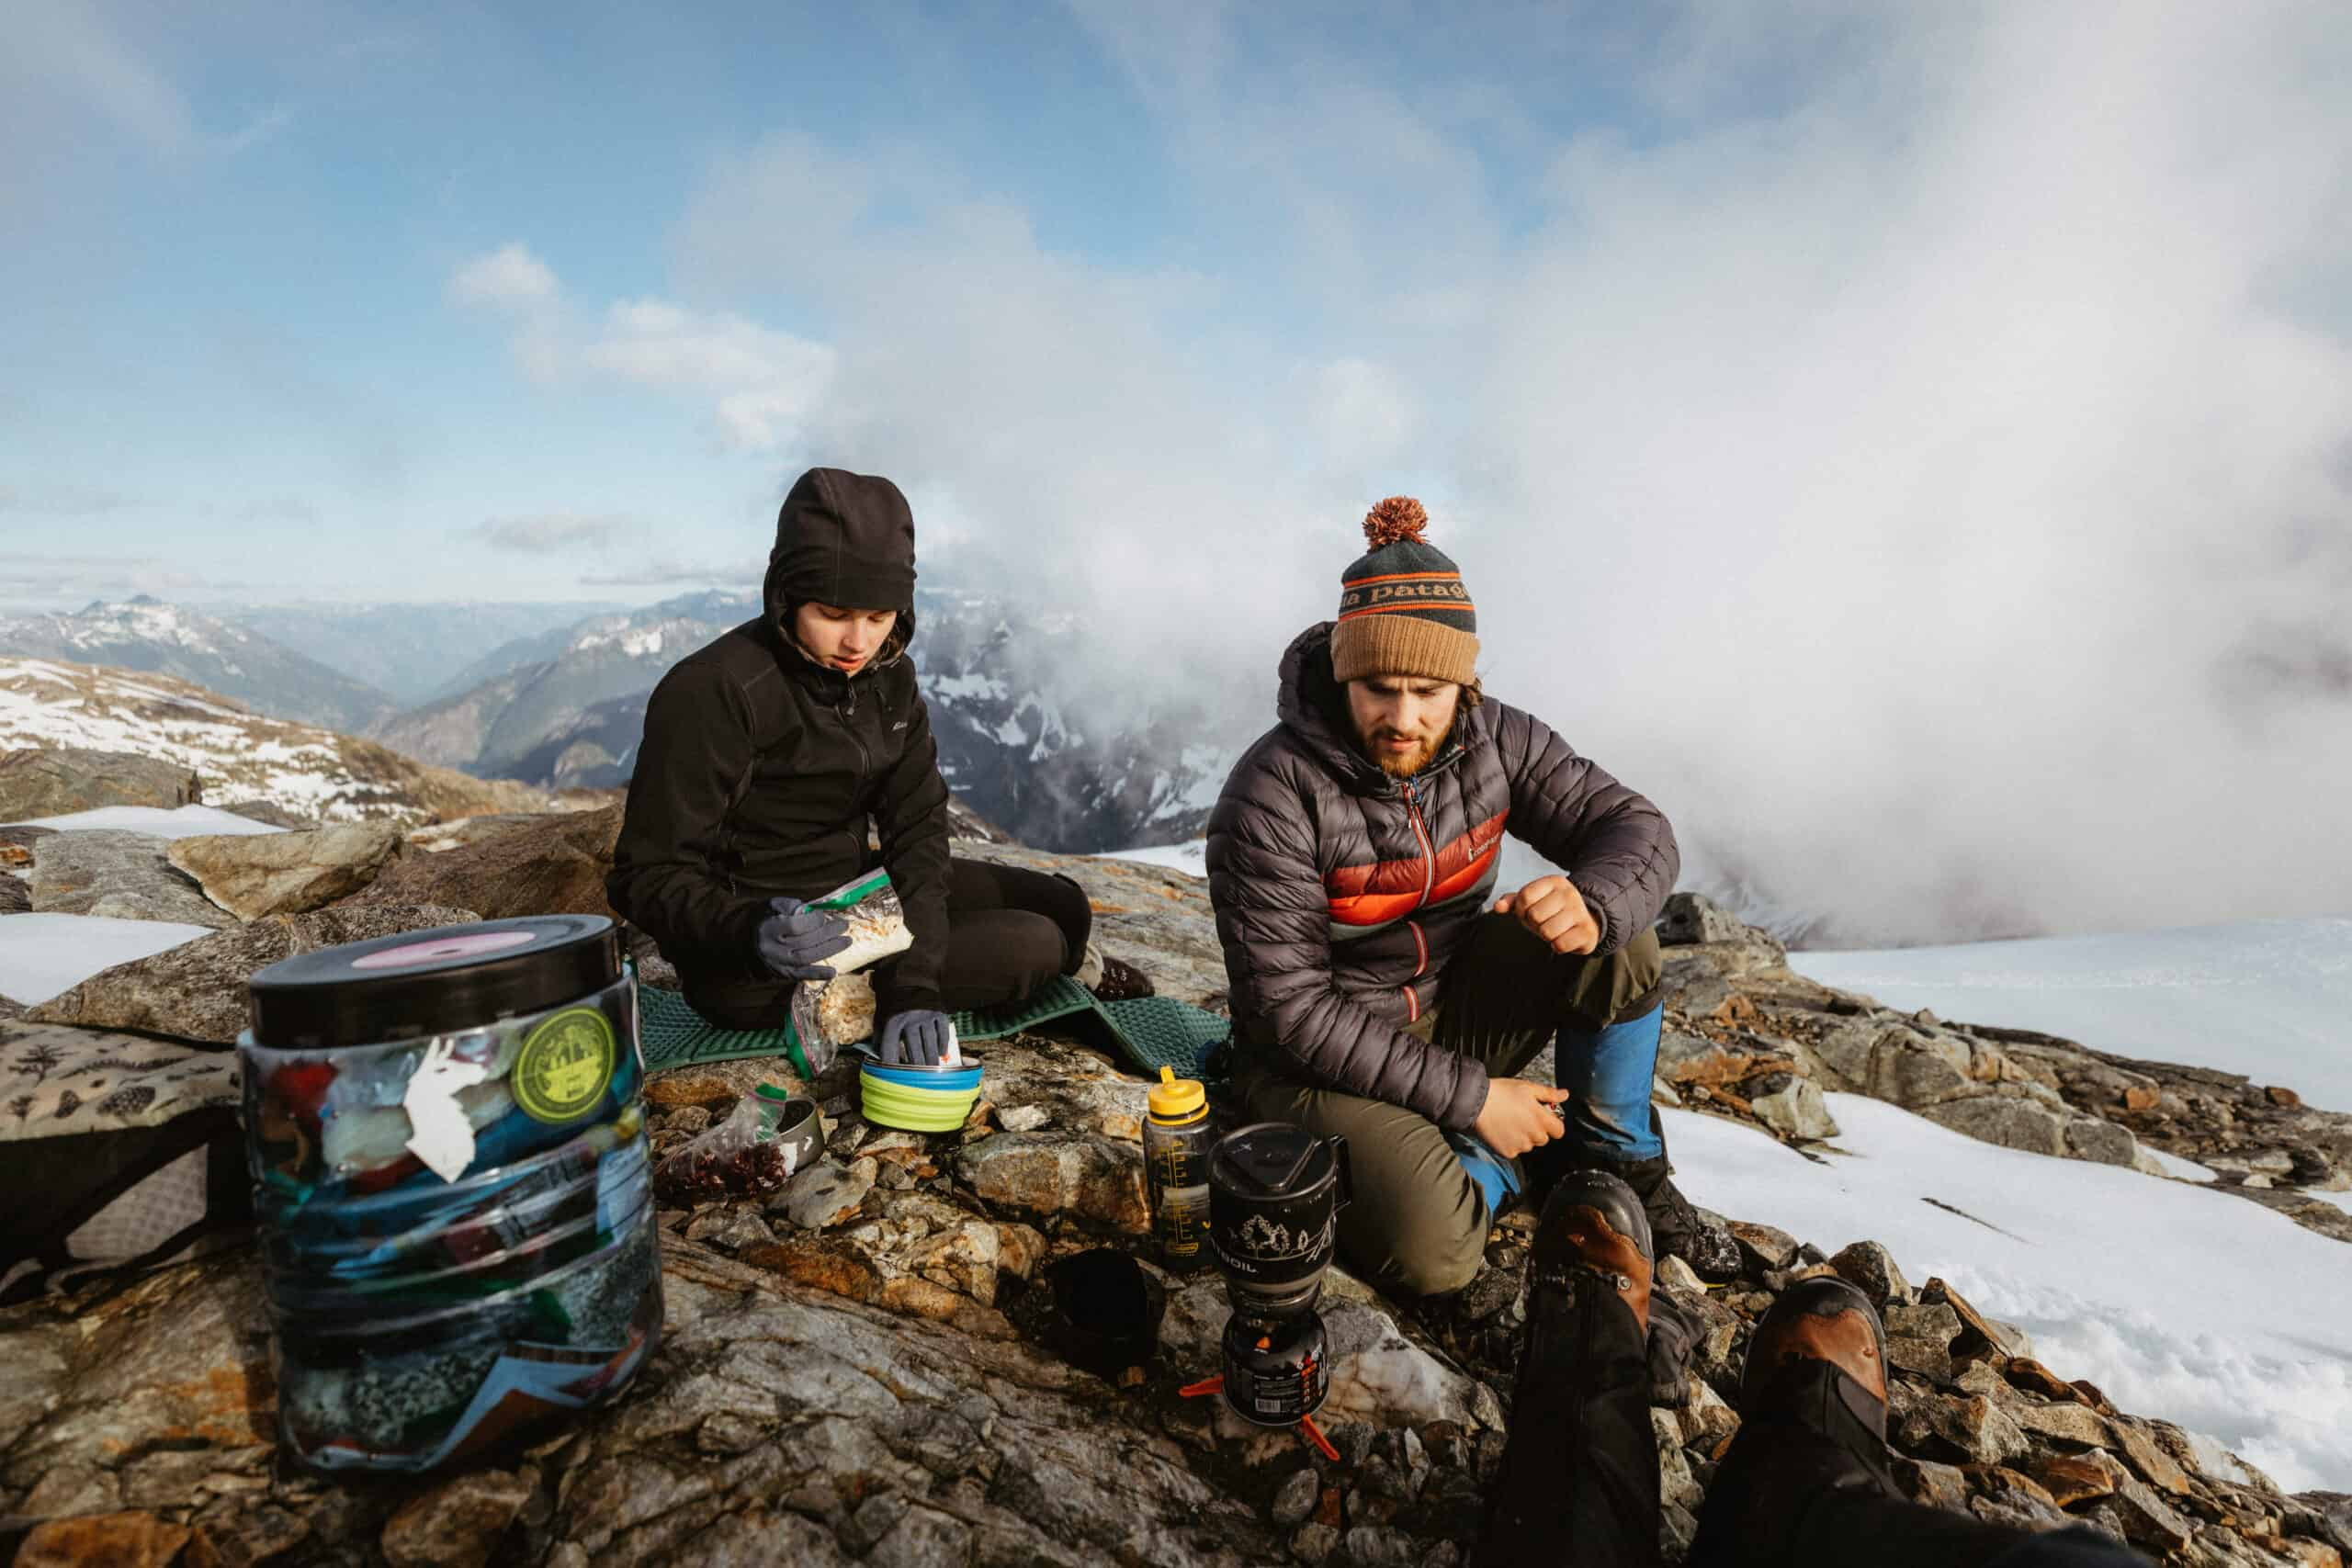 The 11 Best Camping Stoves For Car Camping & Backpacking